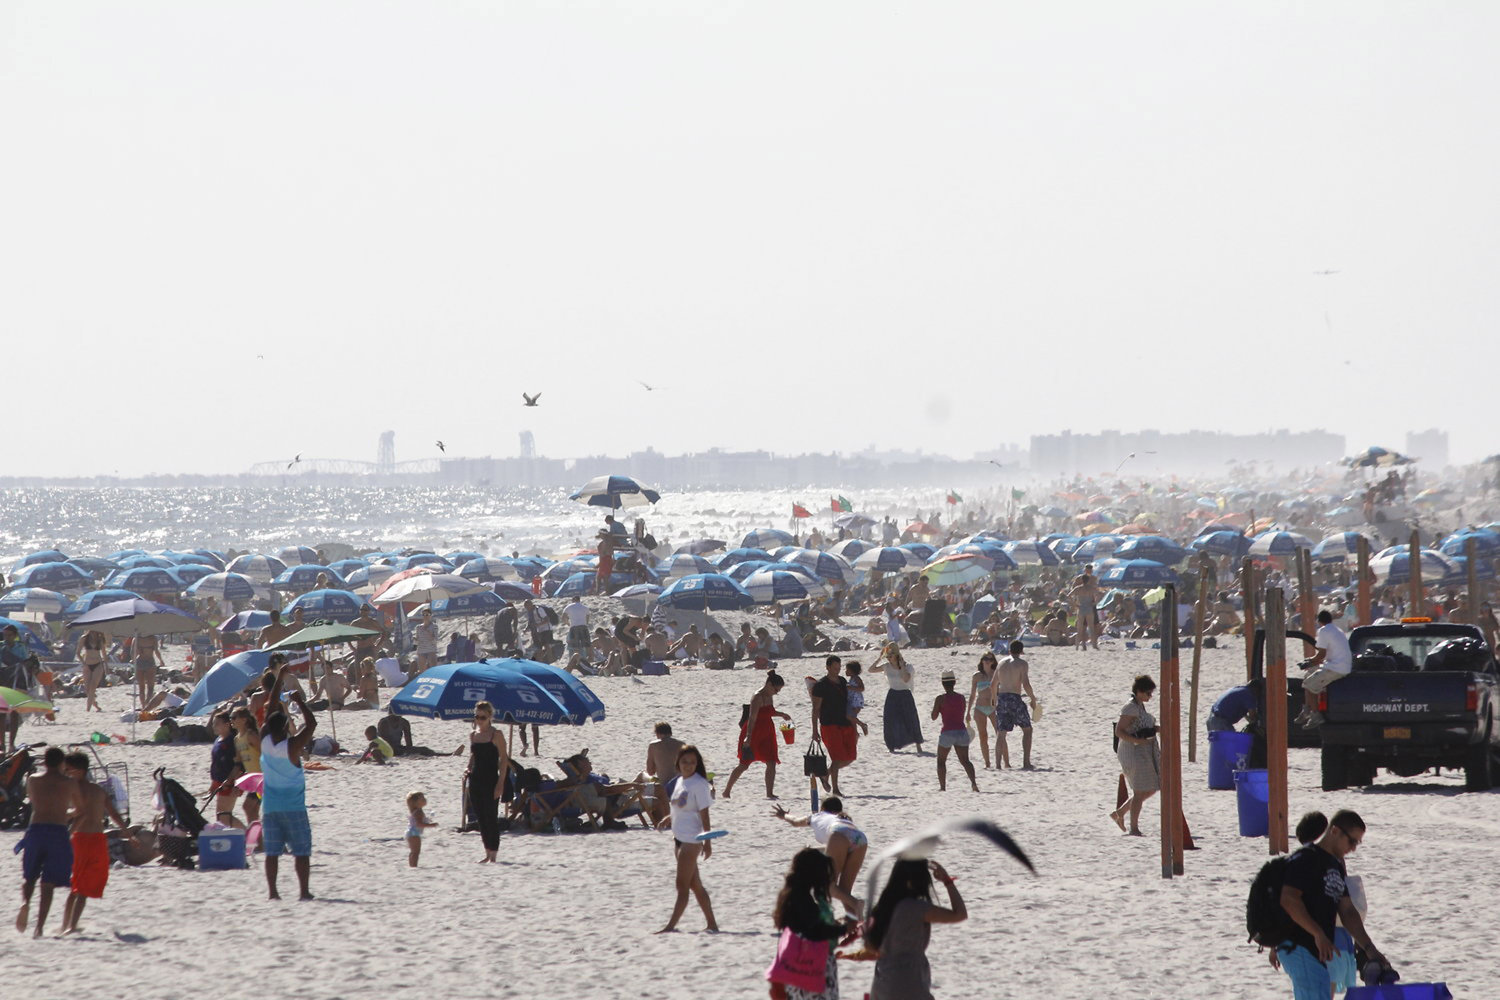 Beaches are set to open across New York State on May 22, in time for the Memorial Day weekend. Local cities and town, however, have the authority to keep them closed. Above, a view of Long Beach before the Covid-19 pandemic.